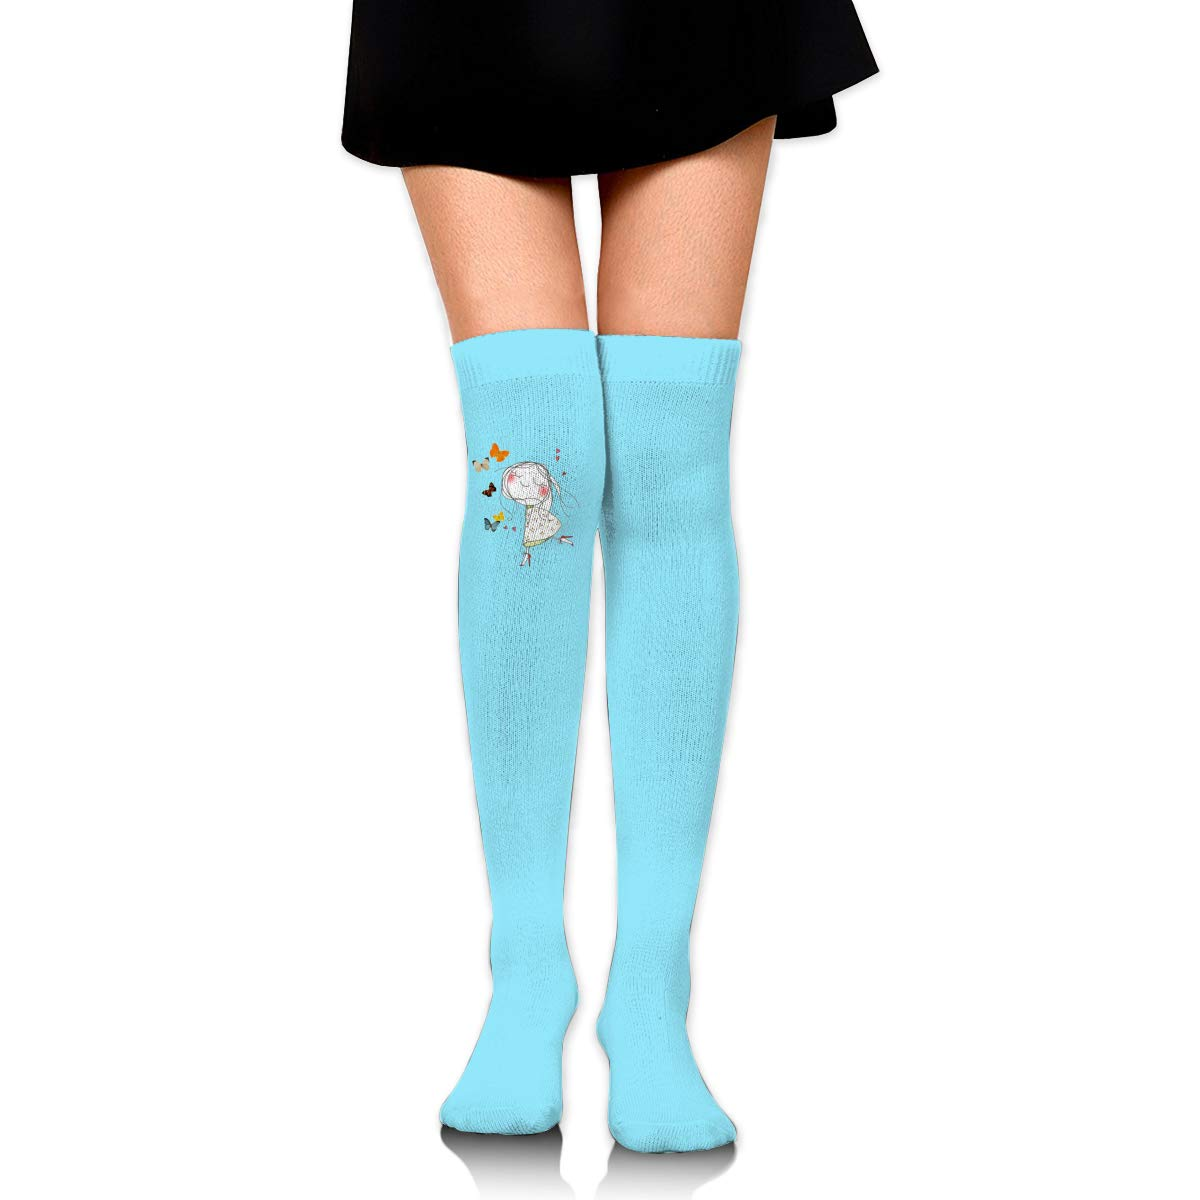 Cute Girls Long Tight Thigh High Socks Over The Knee High Boot Stockings Leg Warmers